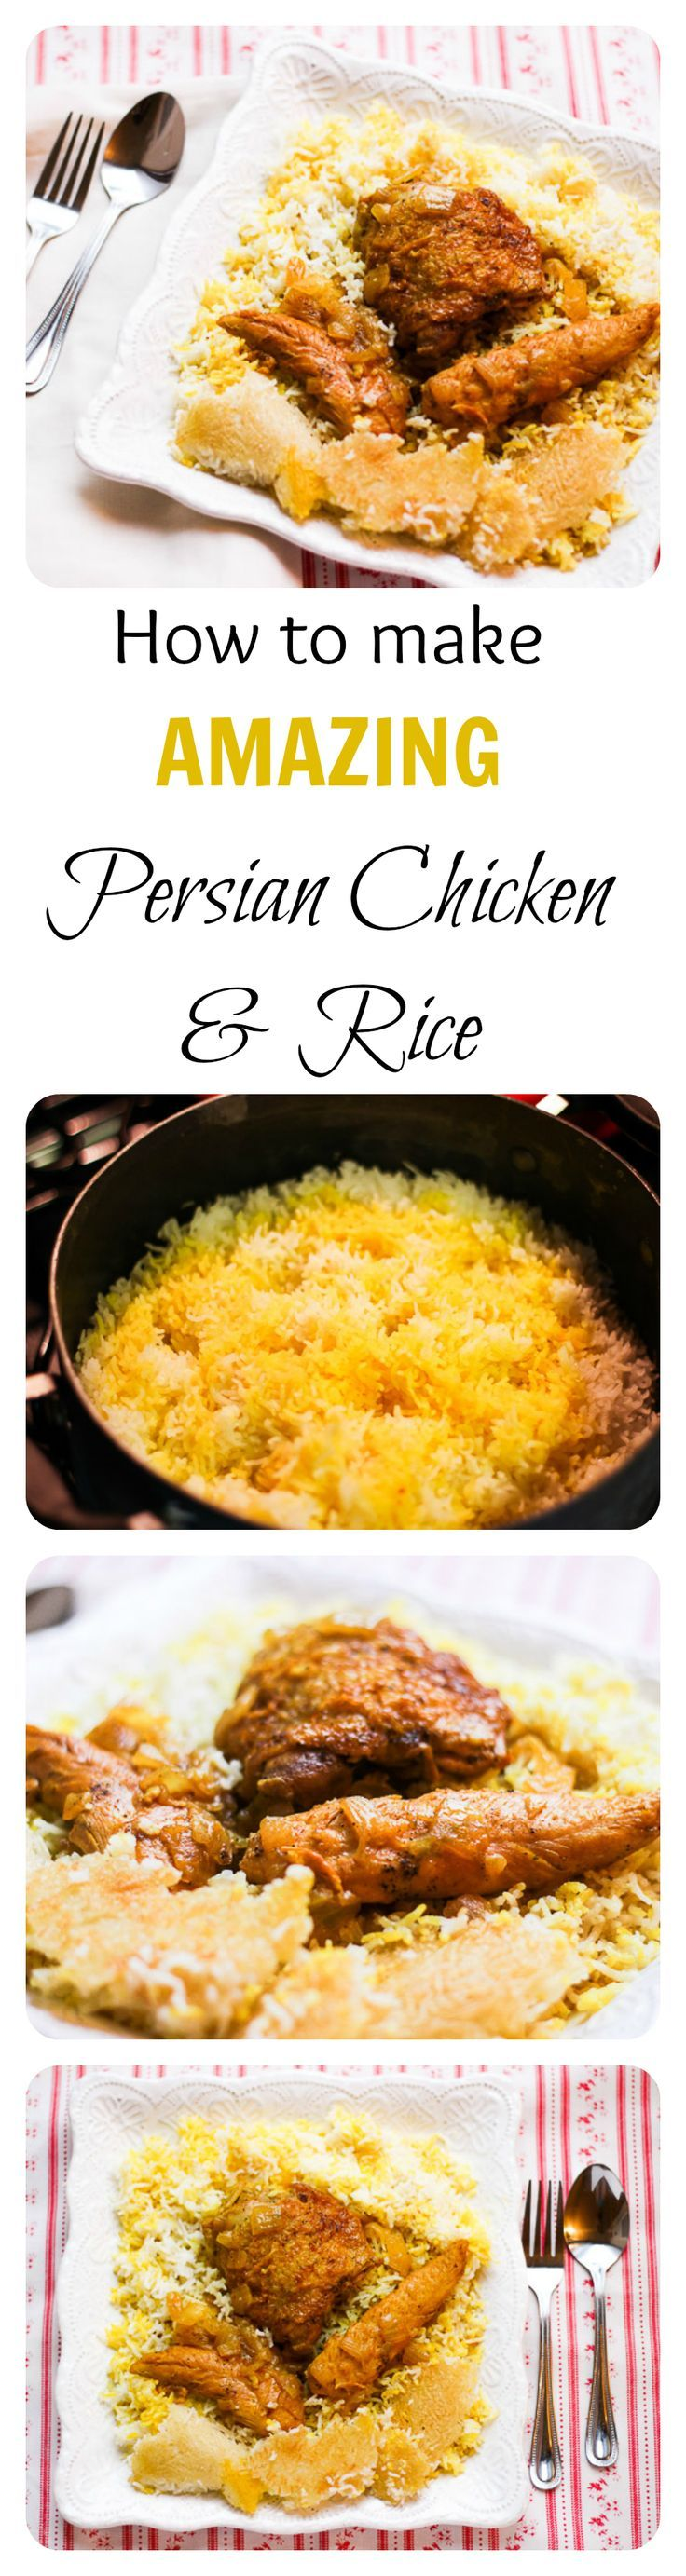 The Ultimate... the BEST Chicken and Rice recipe ever is this Persian Chicken and Rice (AKA Morgh Polo). It's a MUST.